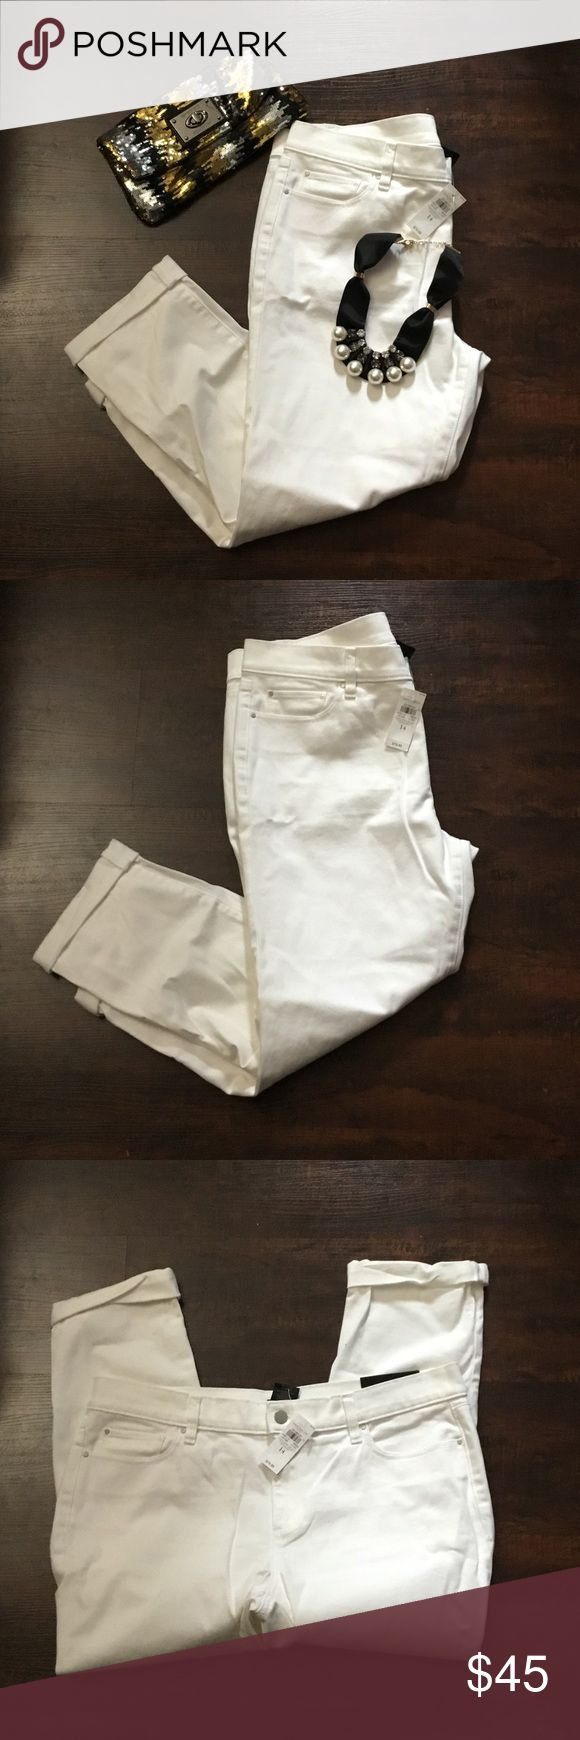 Ann Taylor white boyfriend jeans size 14 Ann Taylor white boyfriend jeans size 14. Approximate measurement waist 10.5 rise  10 inseam 24 out seam 35 thigh 10.5. Thank you looking. No reasonable offer refused.  Bundle your items for savings. Ann Taylor Jeans Boyfriend